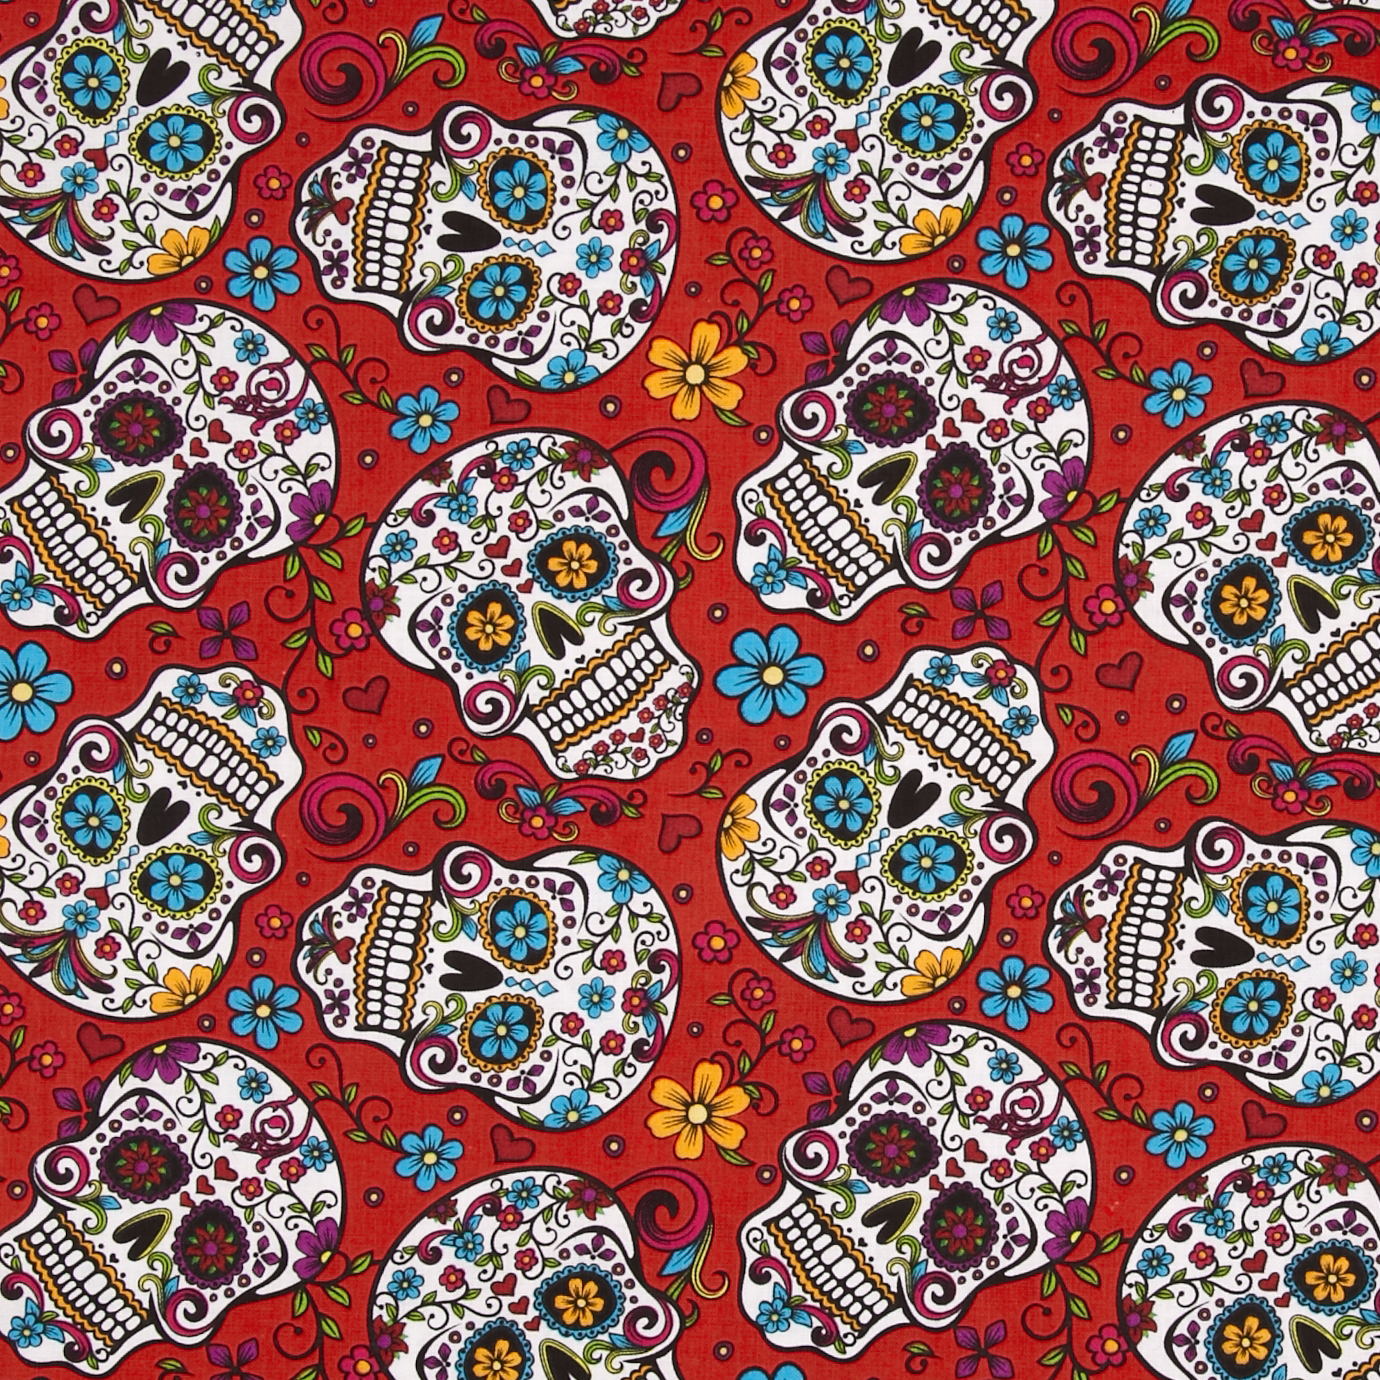 Folkloric Skulls Red Fabric